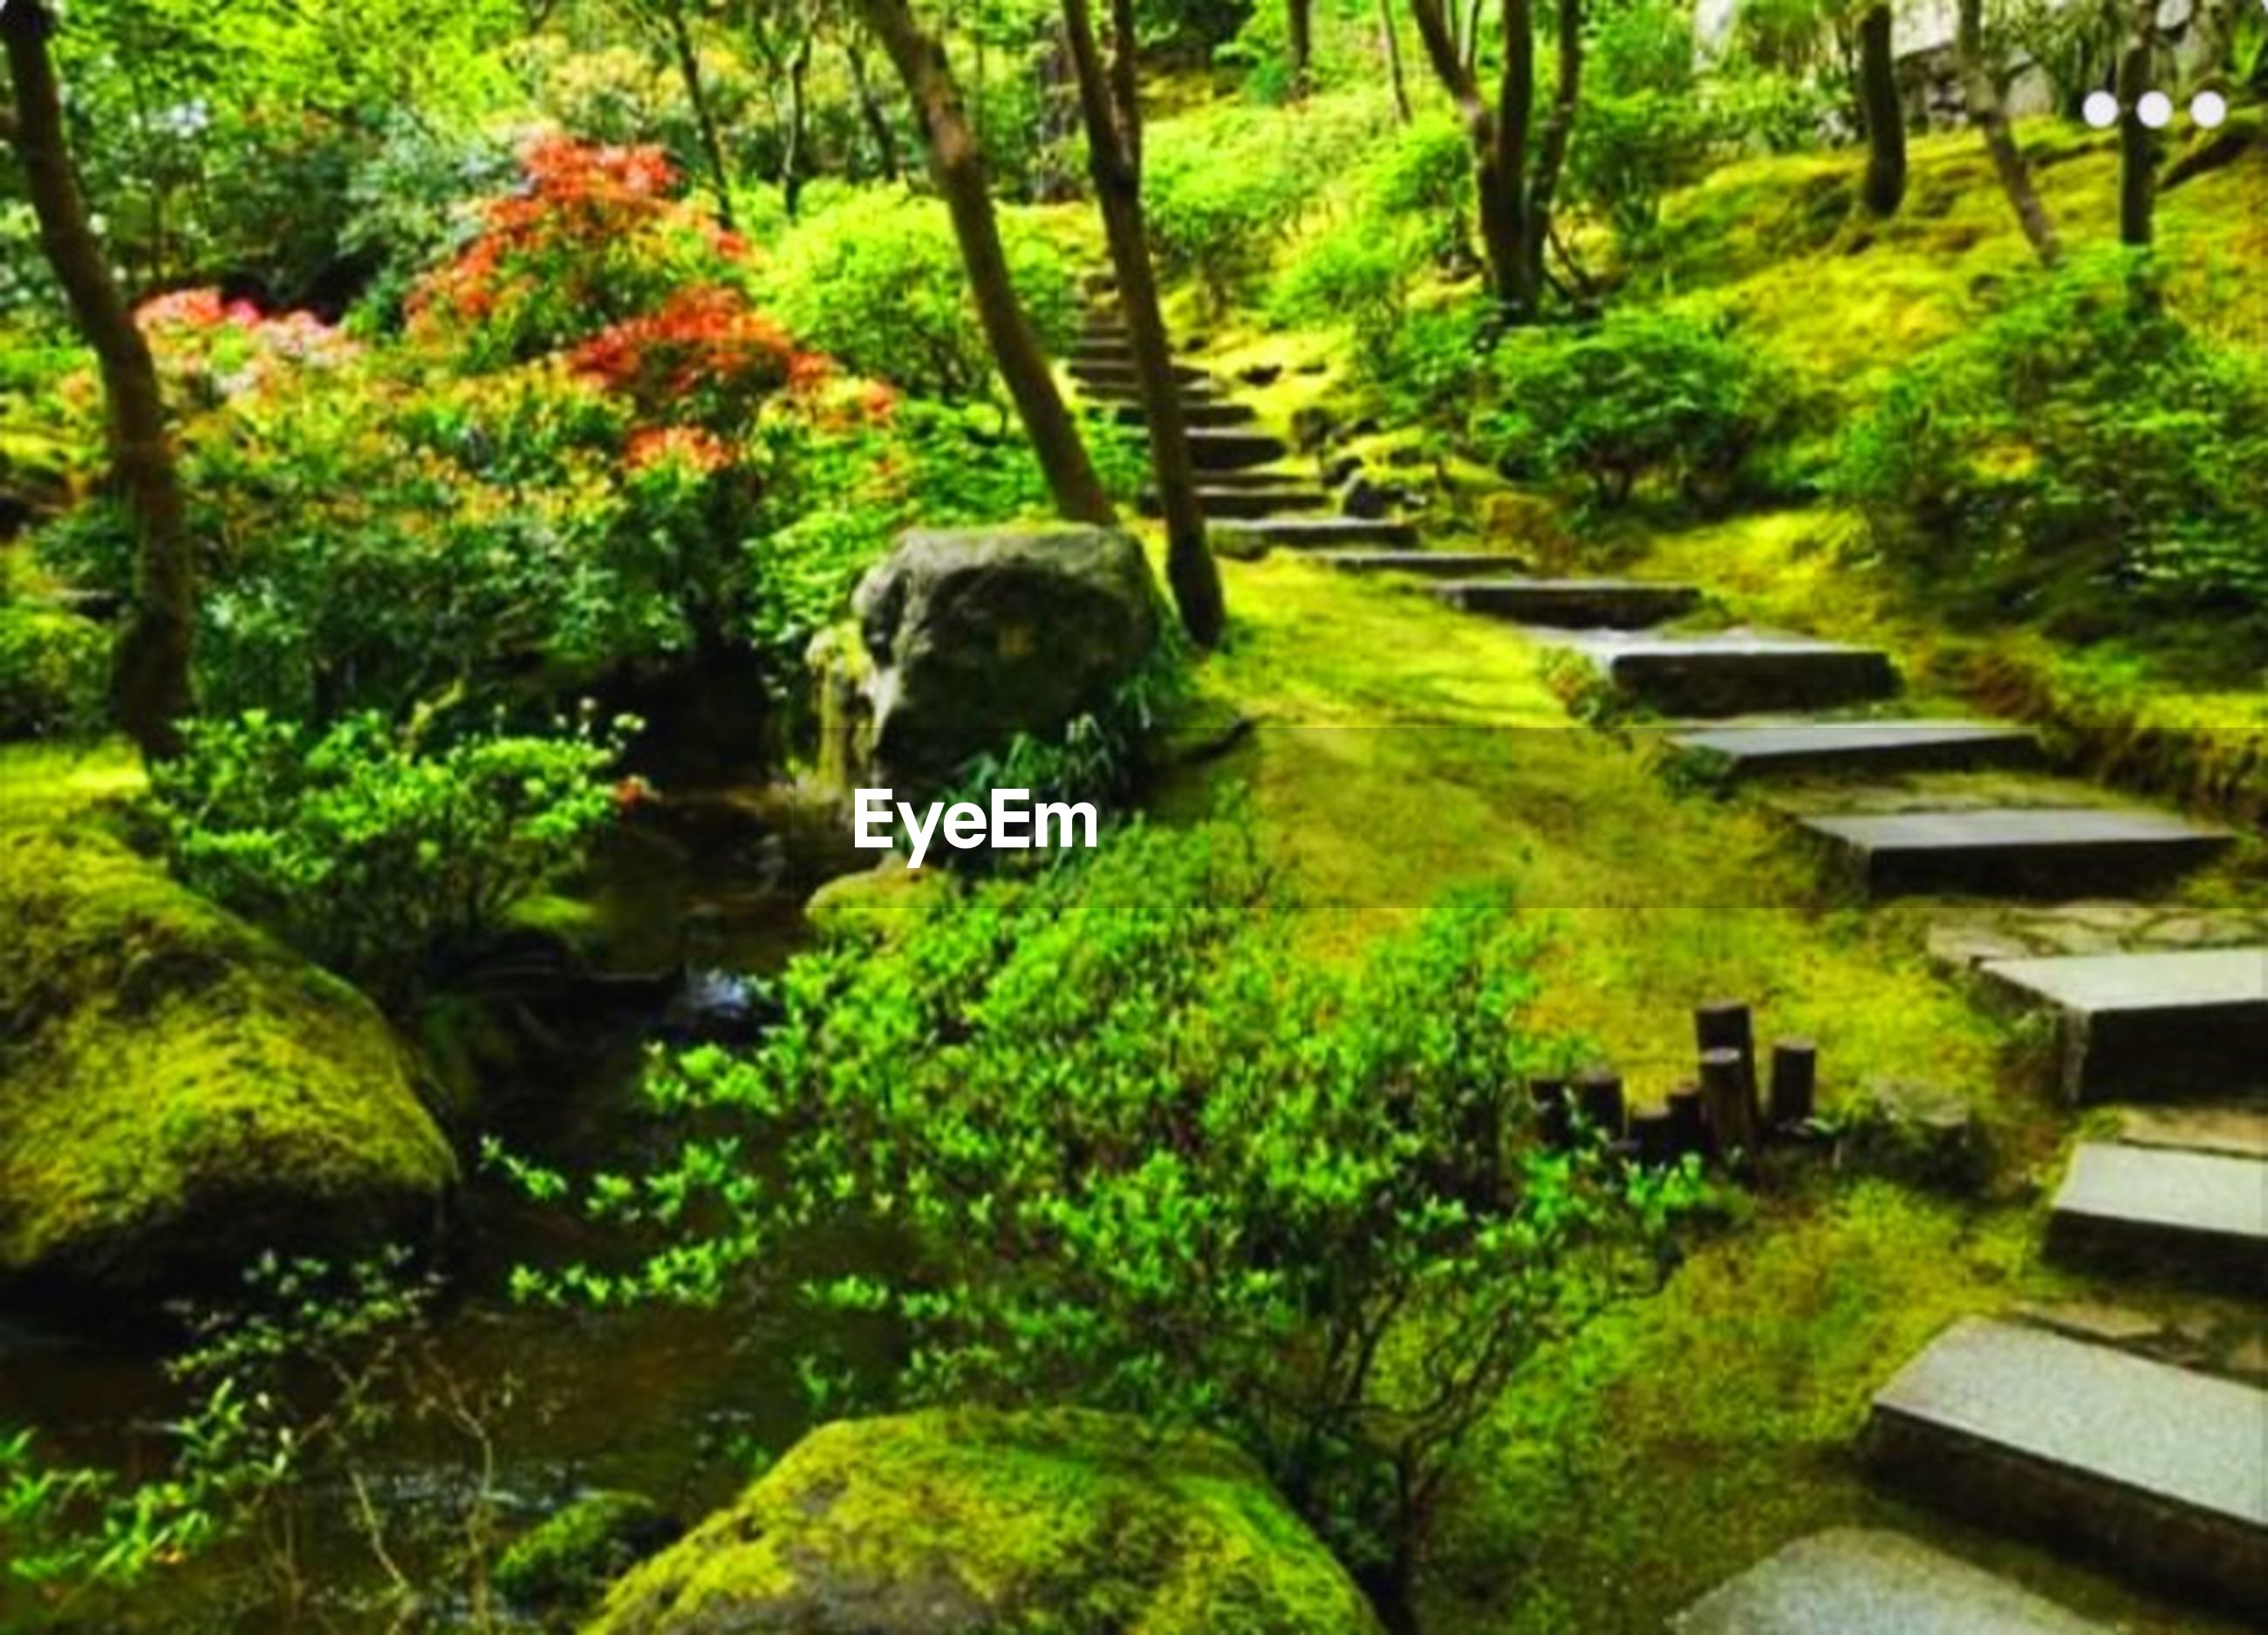 plant, tree, green color, tranquility, growth, nature, no people, beauty in nature, formal garden, tranquil scene, japanese garden, garden, forest, day, foliage, lush foliage, outdoors, scenics - nature, landscaped, ornamental garden, garden path, hedge